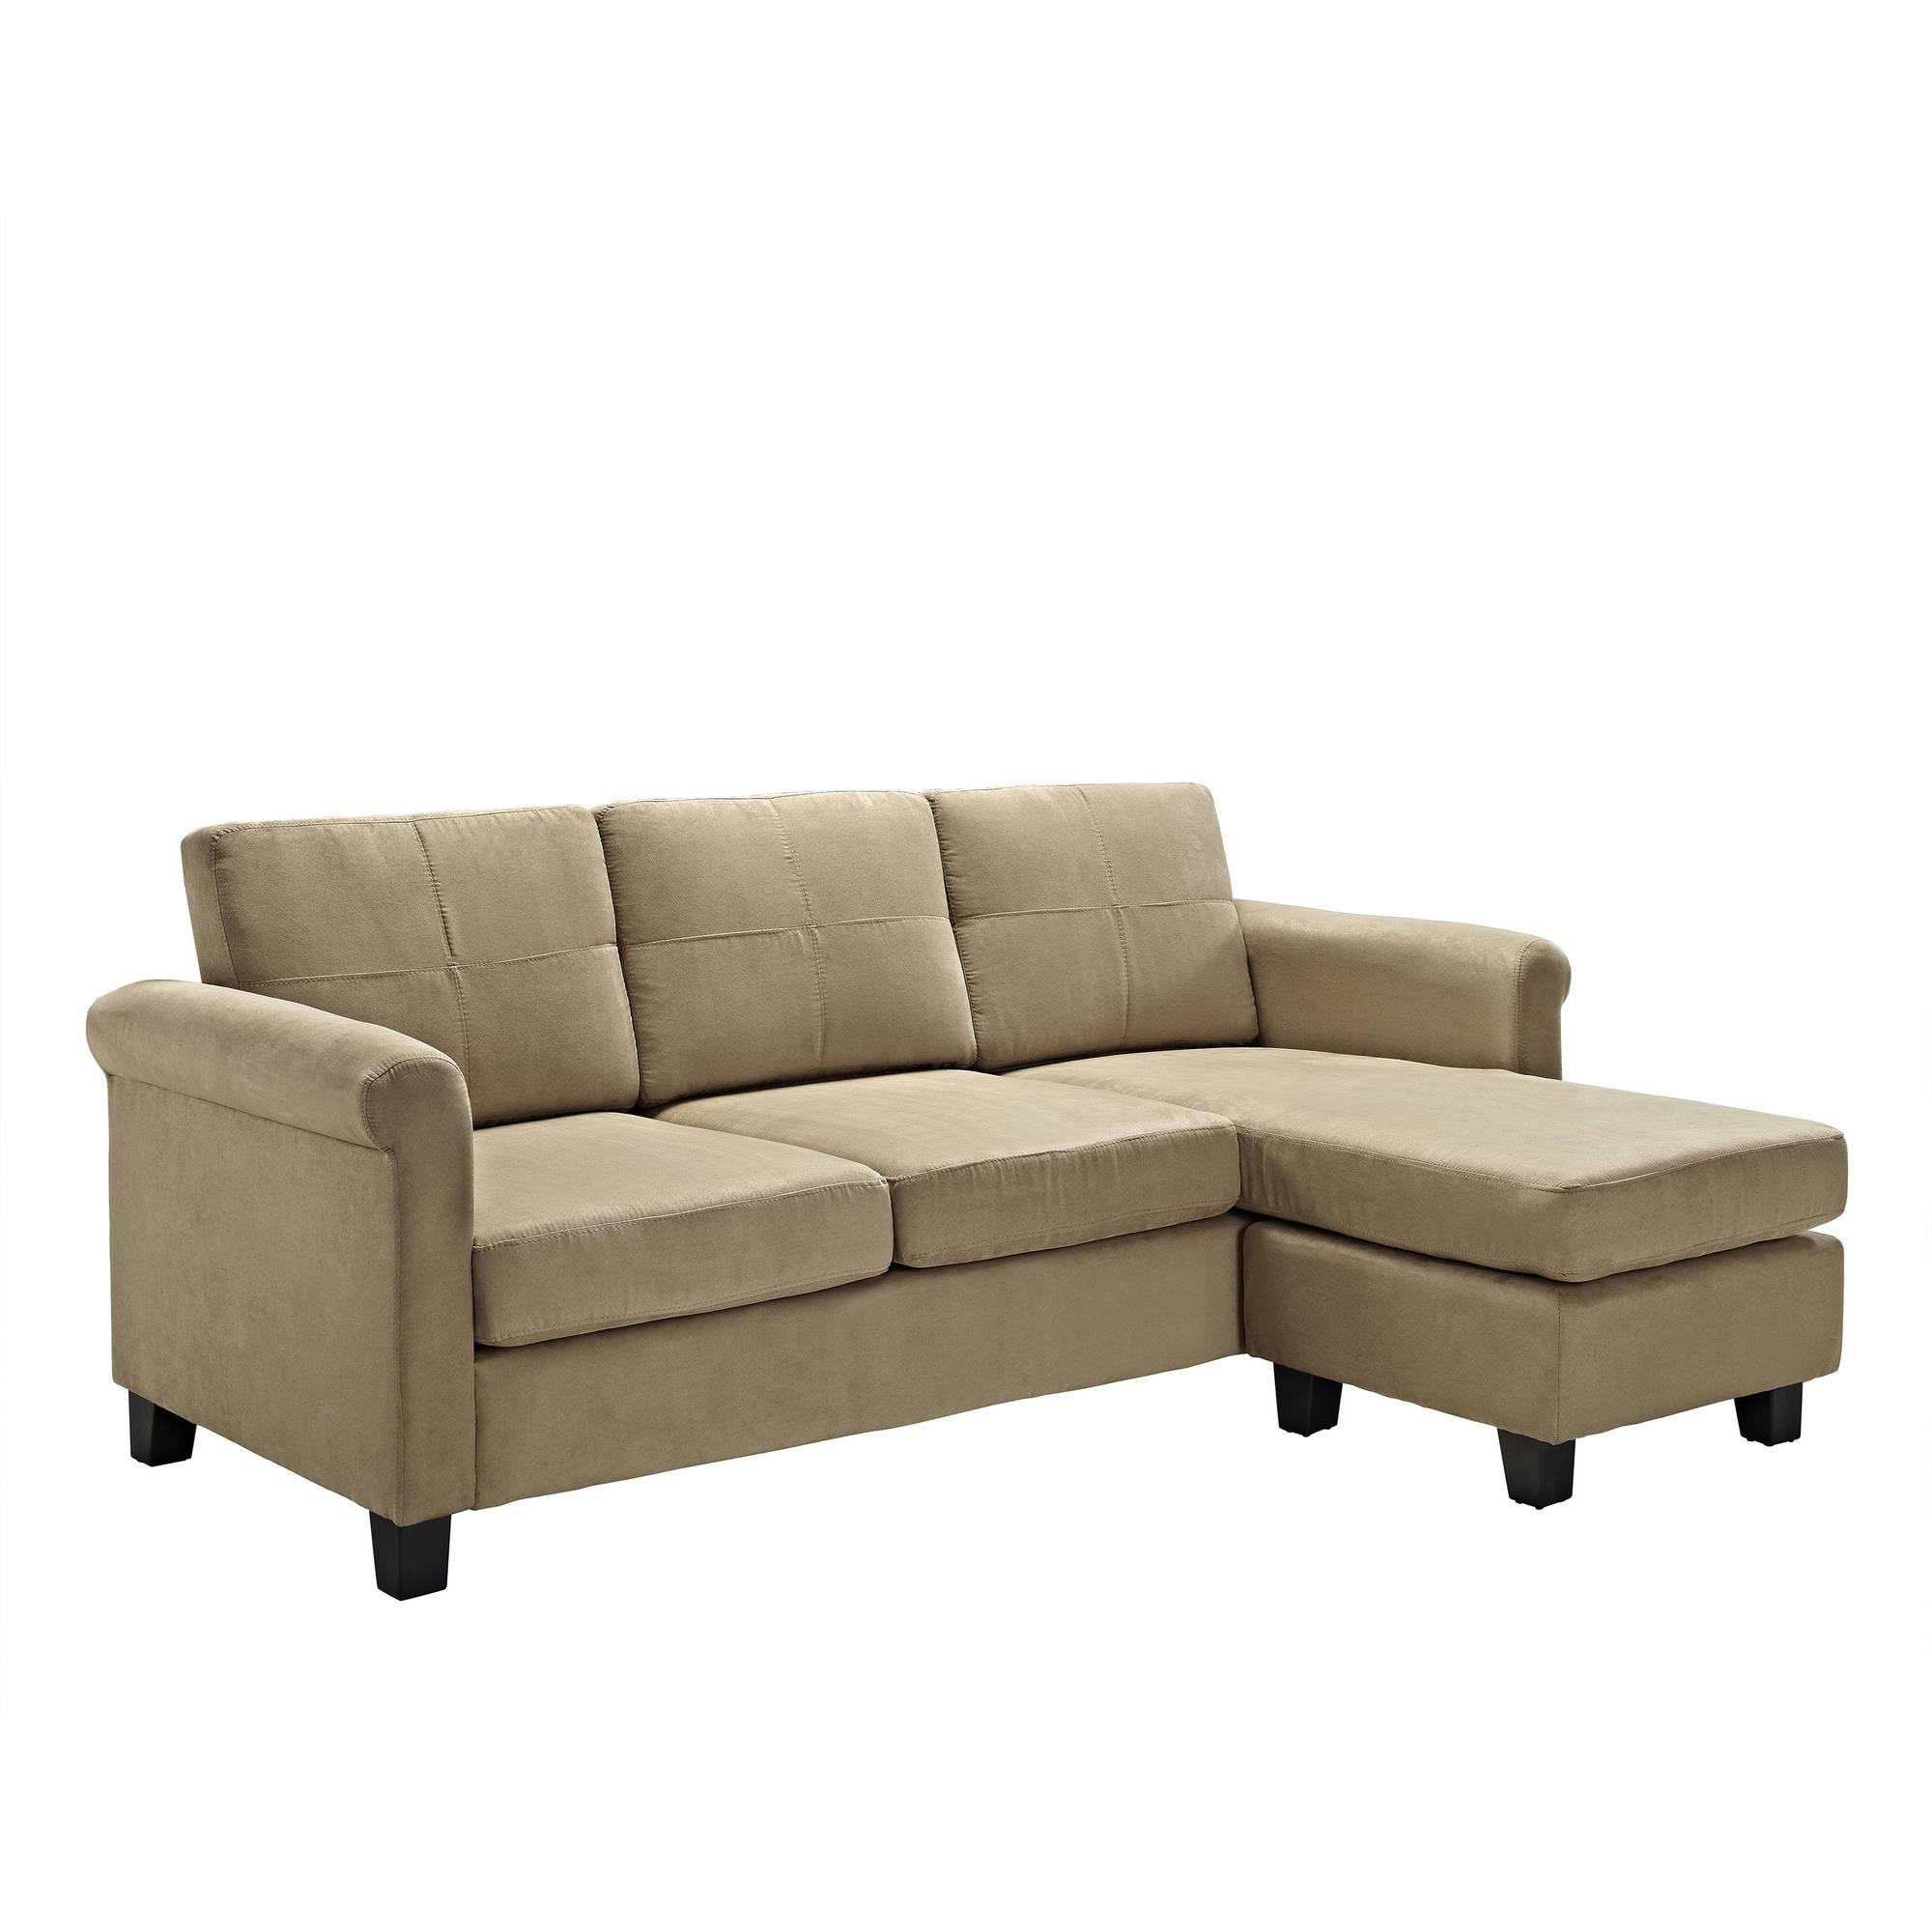 Dorel Living Small Spaces Configurable Sectional Sofa, Multiple in Small 2 Piece Sectional Sofas (Image 11 of 30)